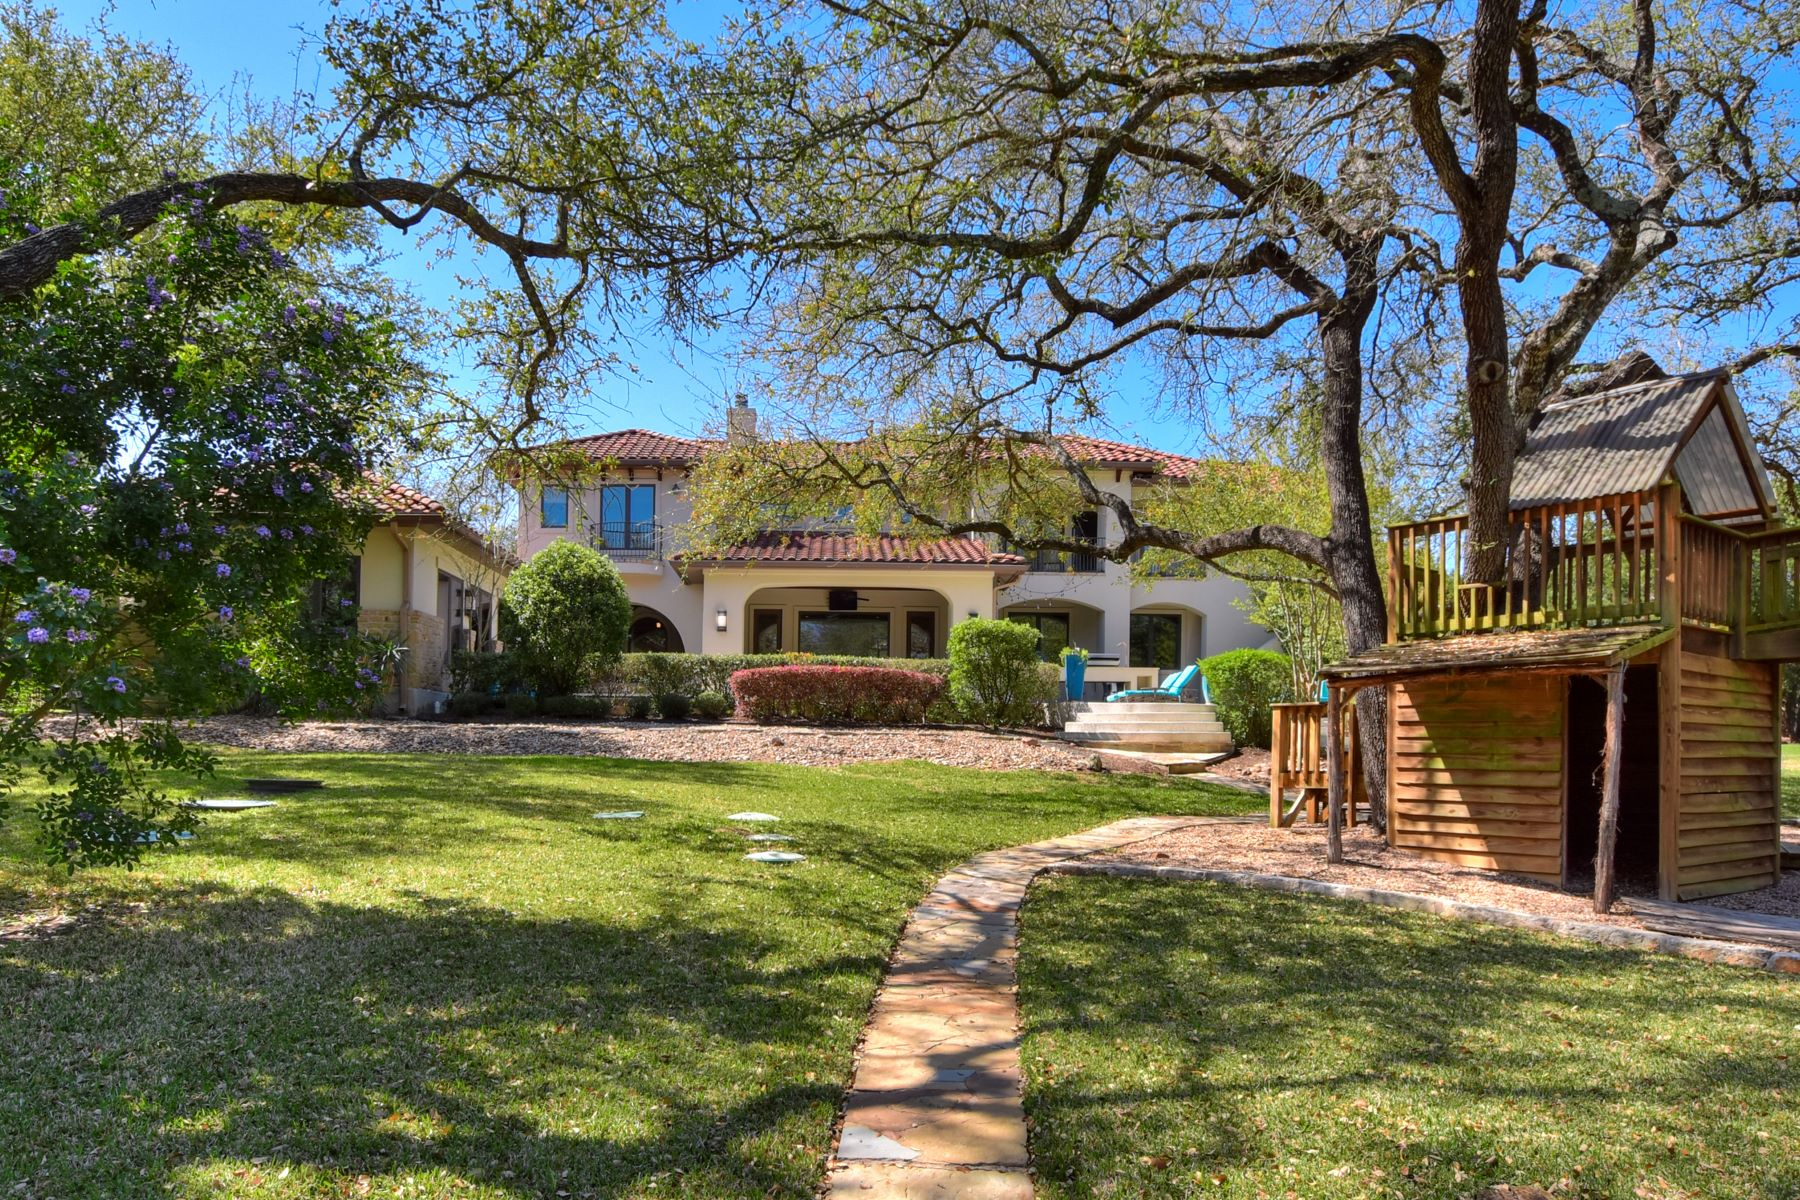 Additional photo for property listing at Stunning Custom Home on Cul de Sac 8701 Smoketree Cove Austin, Texas 78735 United States